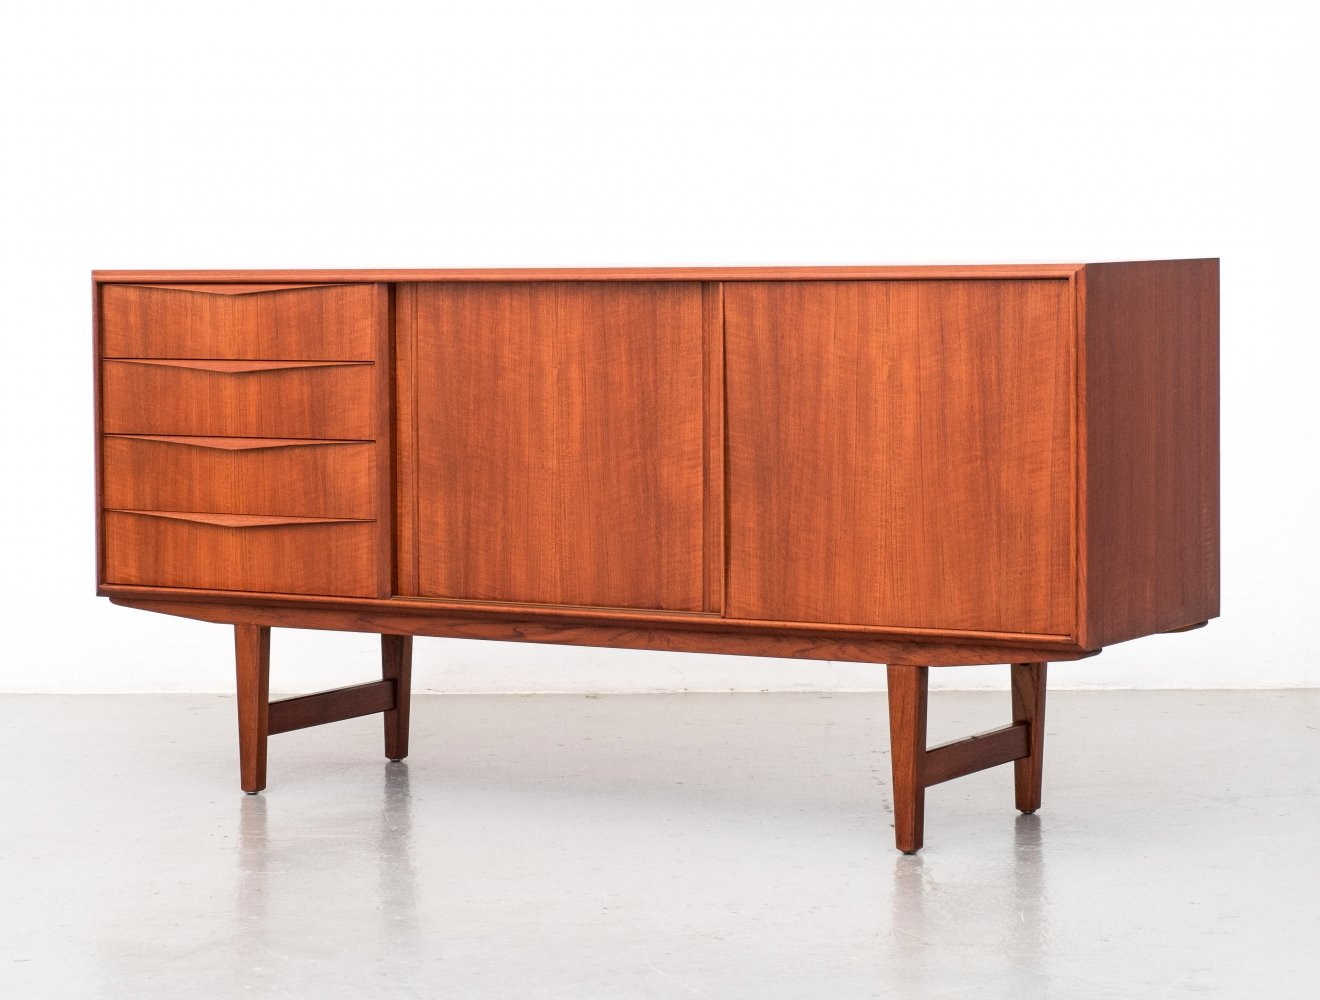 Sideboard by E.W. Bach for Sejling Skabe Denmark, 1960s